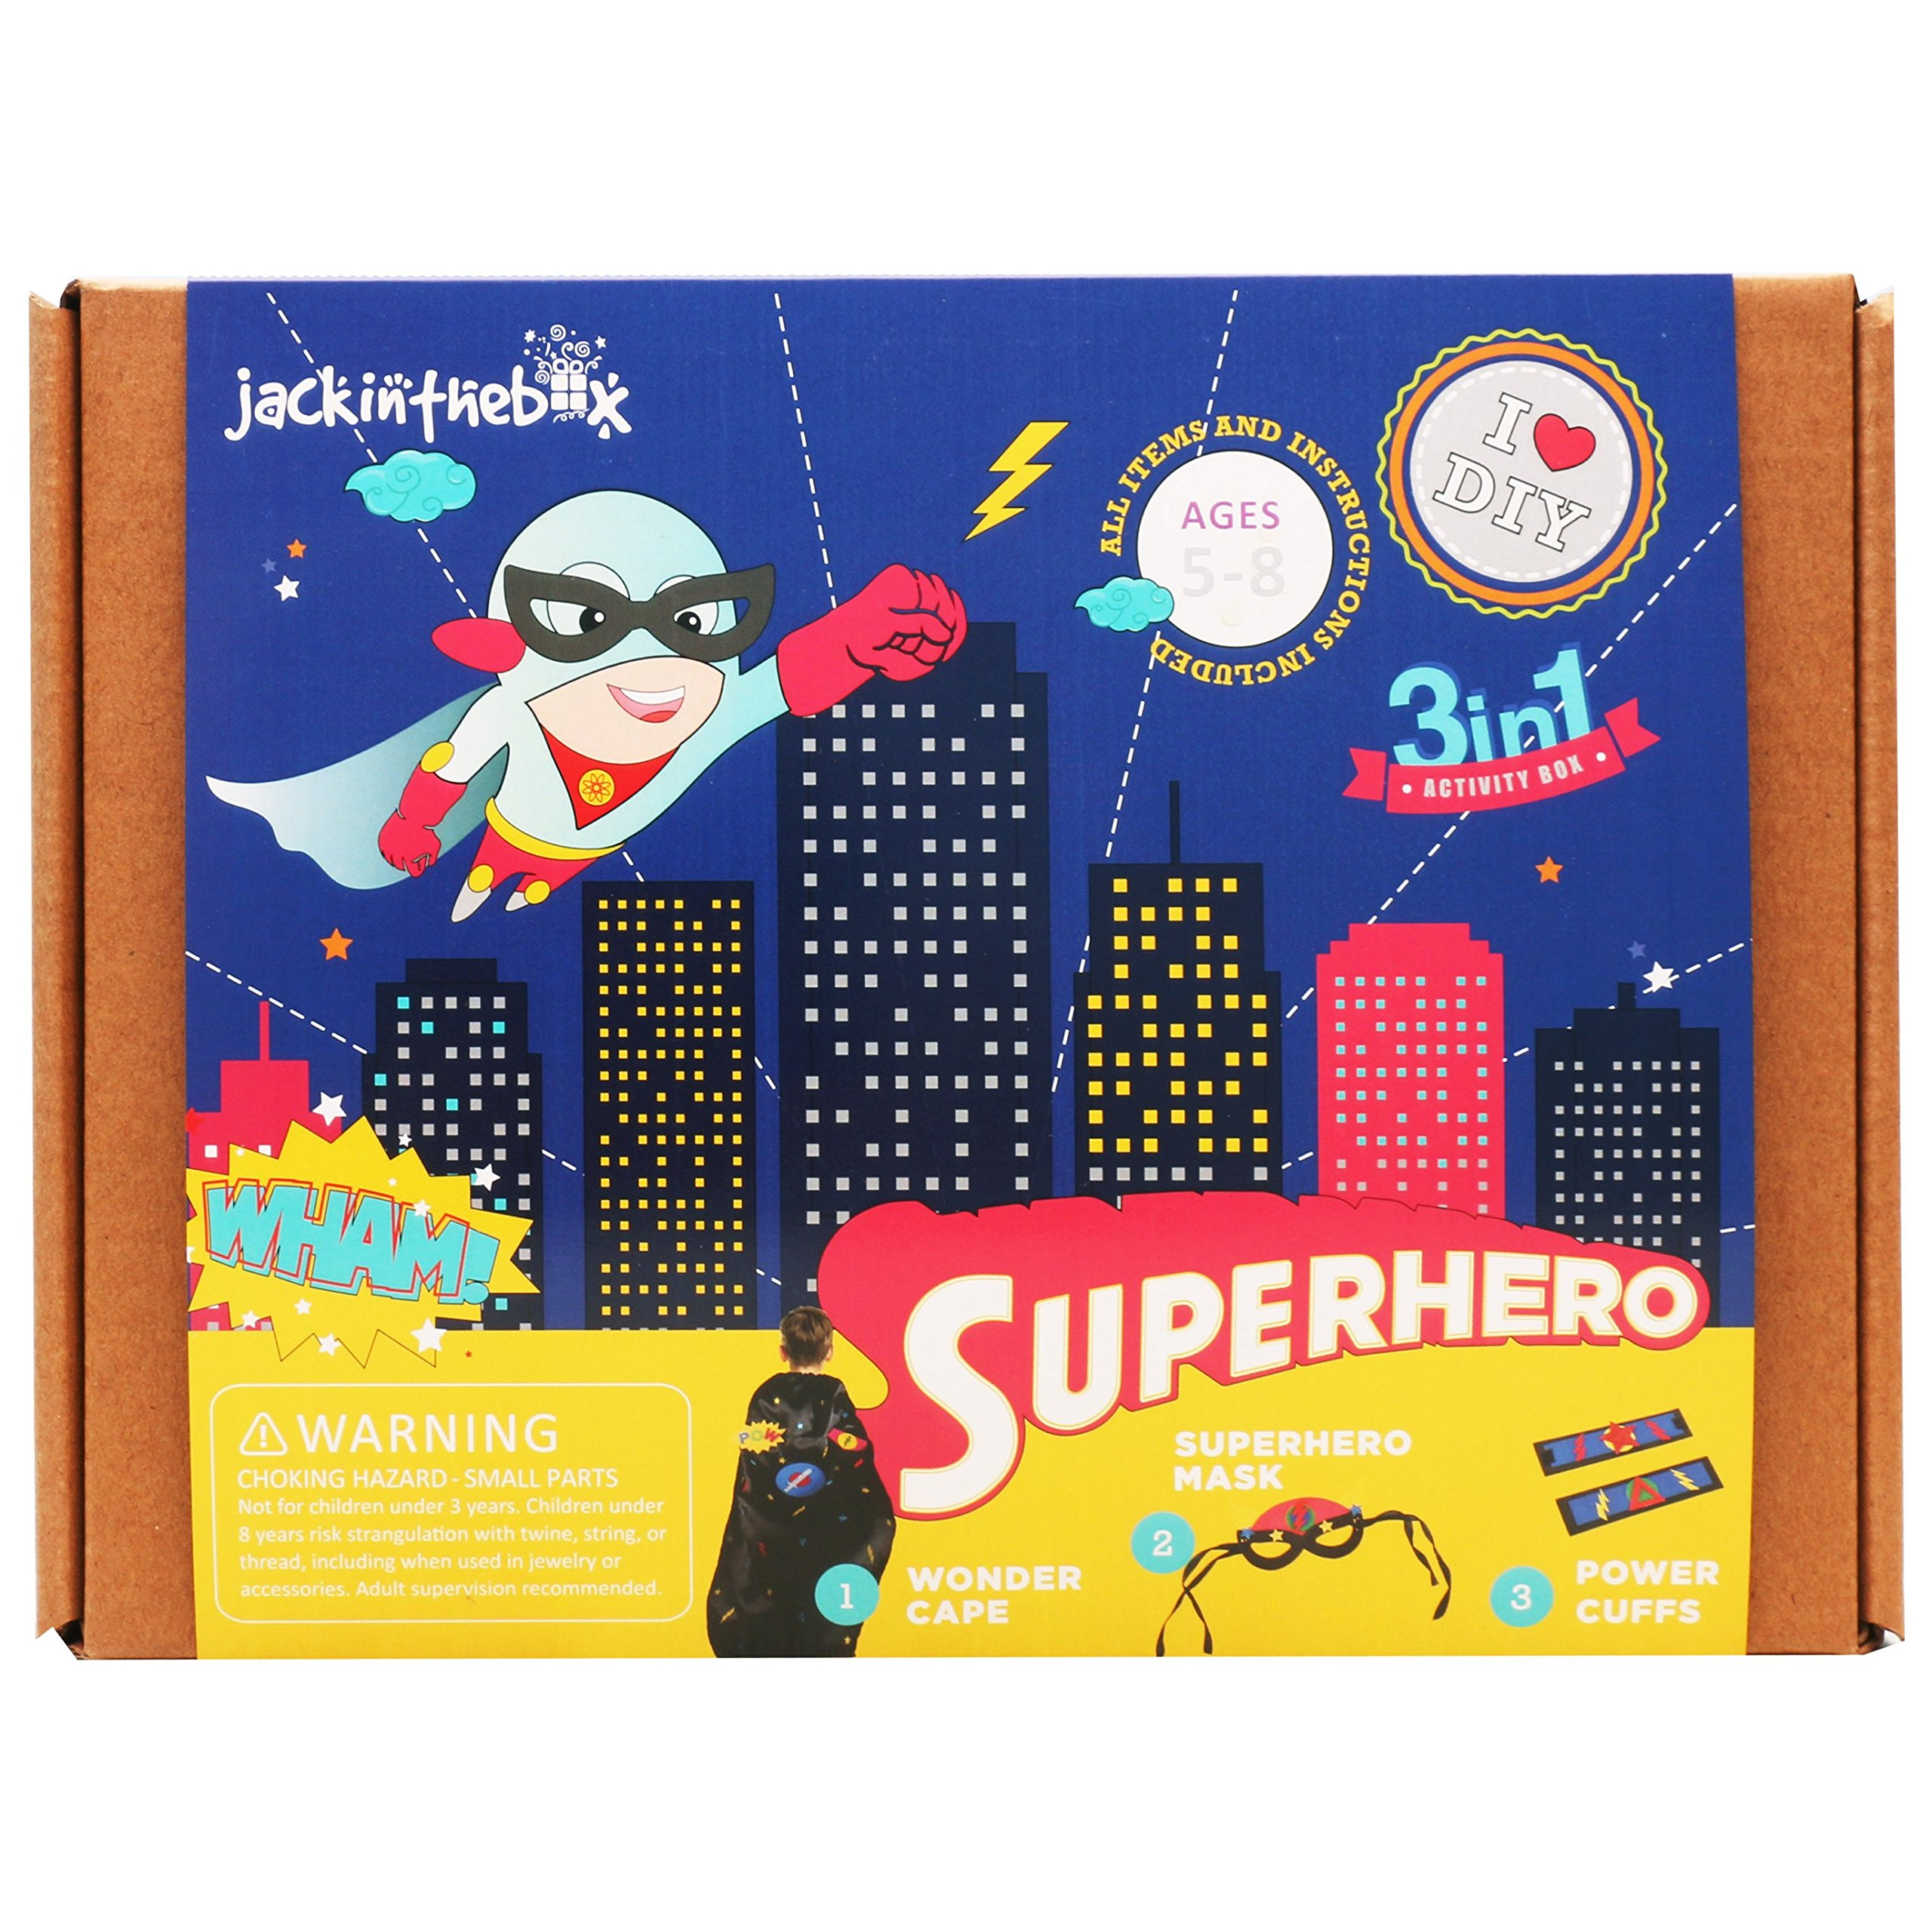 Art and Craft Costume Kit for Kids - Superhero 3-in-1 DIY Activities Pretend Play Costumes for Boys Ages 5-8, Perfect Birthday Gift for Boys Learning Stem Toys by JackInTheBox